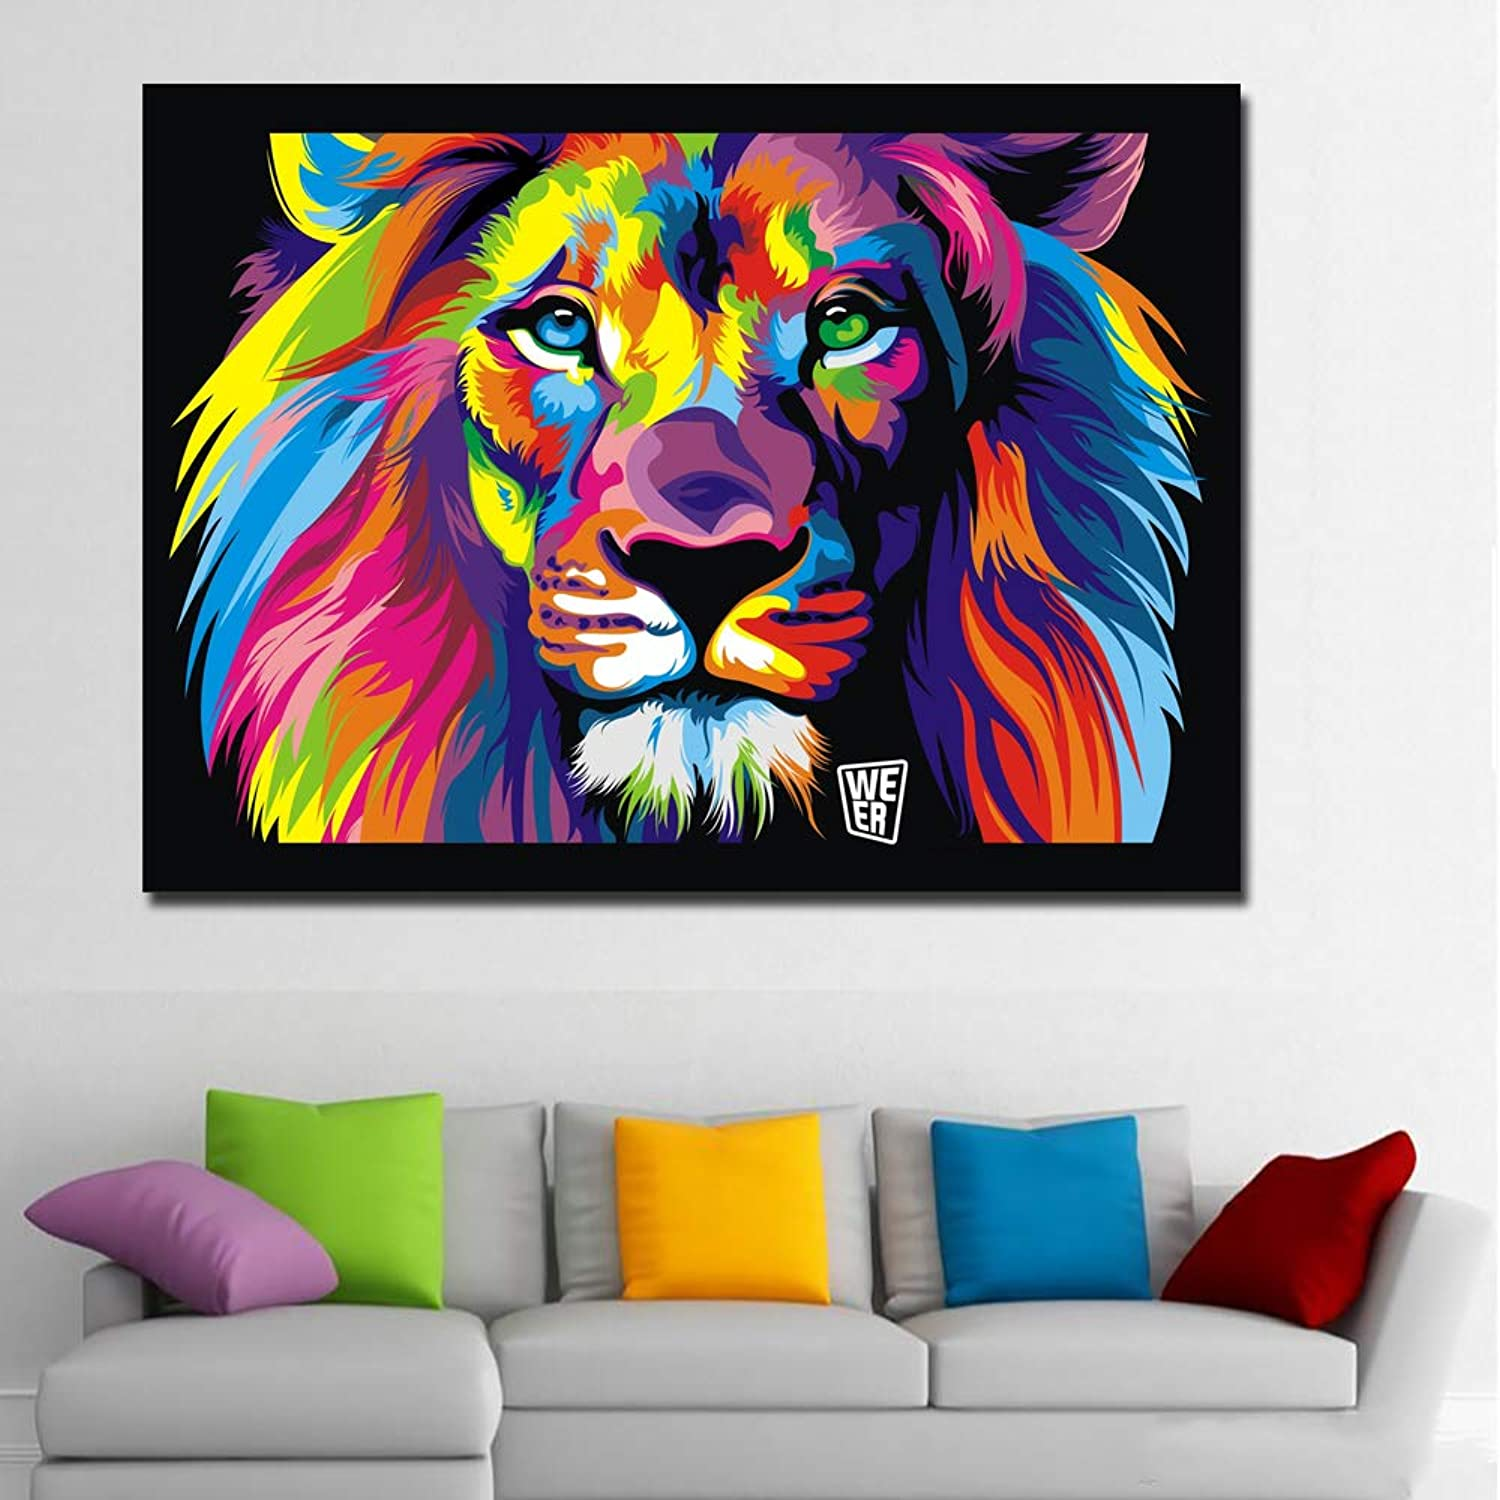 W15Y8 Hd Print Pop Art colorful Lion Abstract Animals Oil Painting On Canvas Modern Wall Art Picture For Kid Room Poster Cudros Decor 70X95Cm No Frame